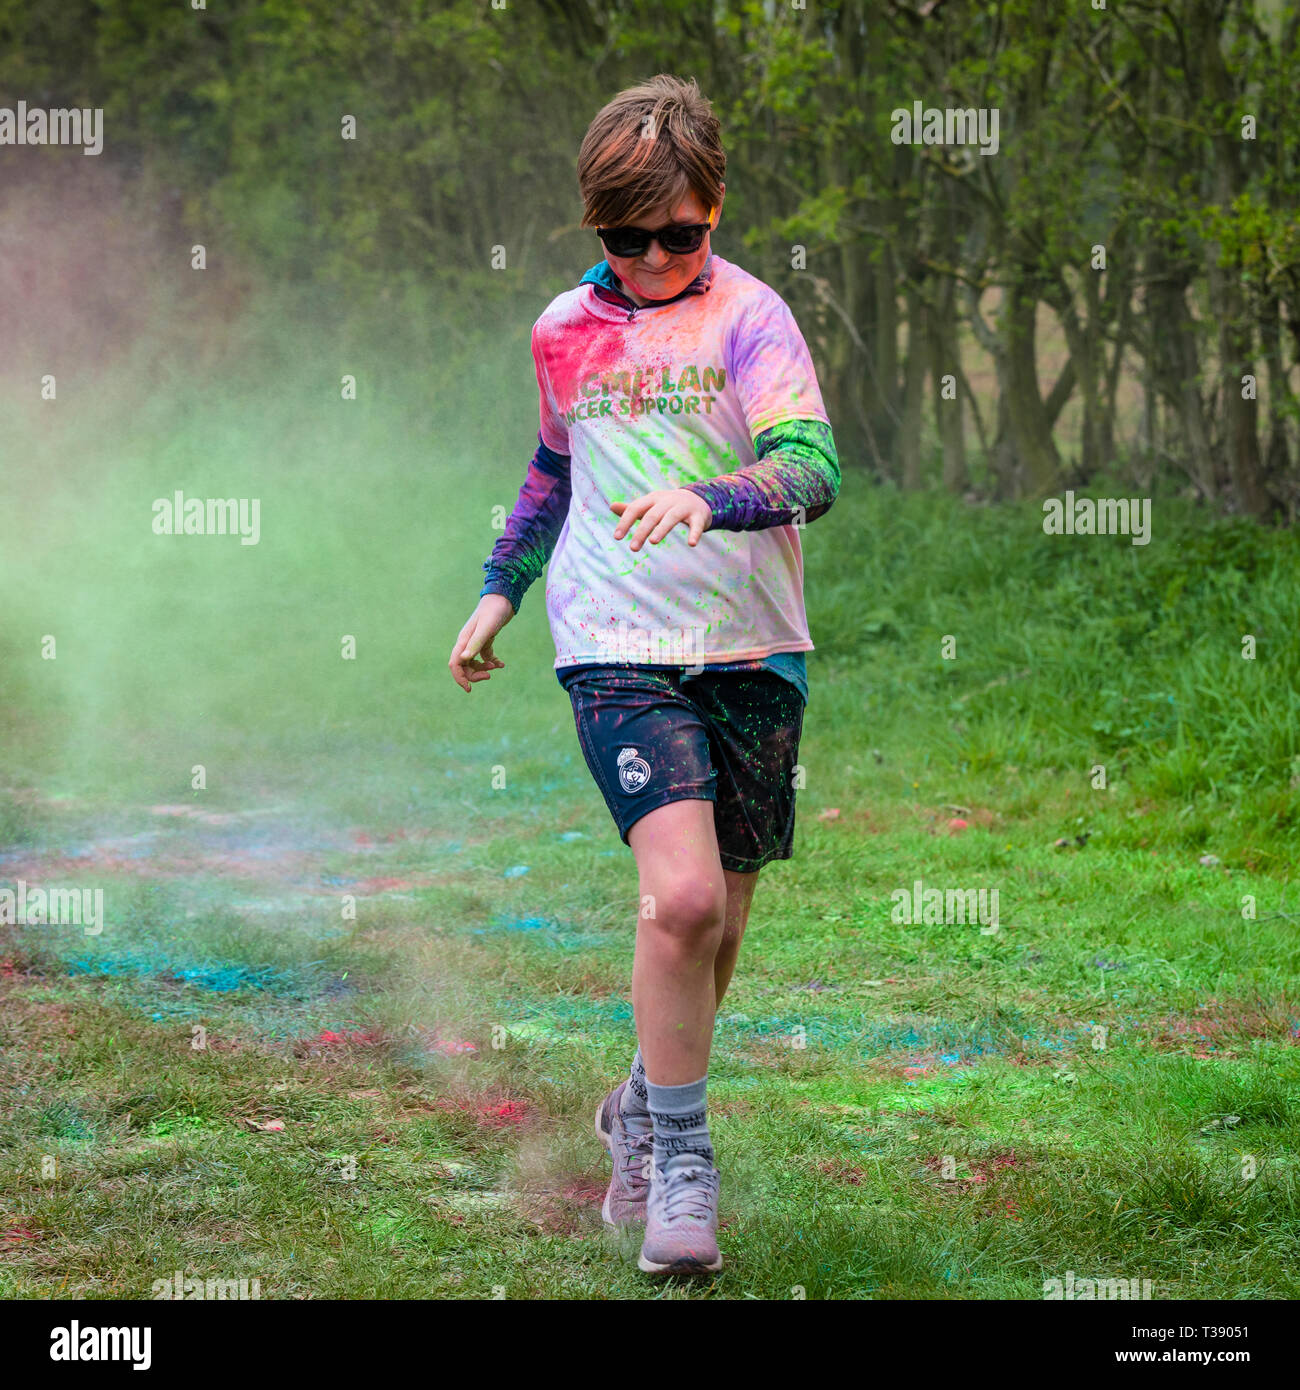 Young boy running hard and covered in paint on Macmillan cancer charity 5K colour fun run. - Stock Image